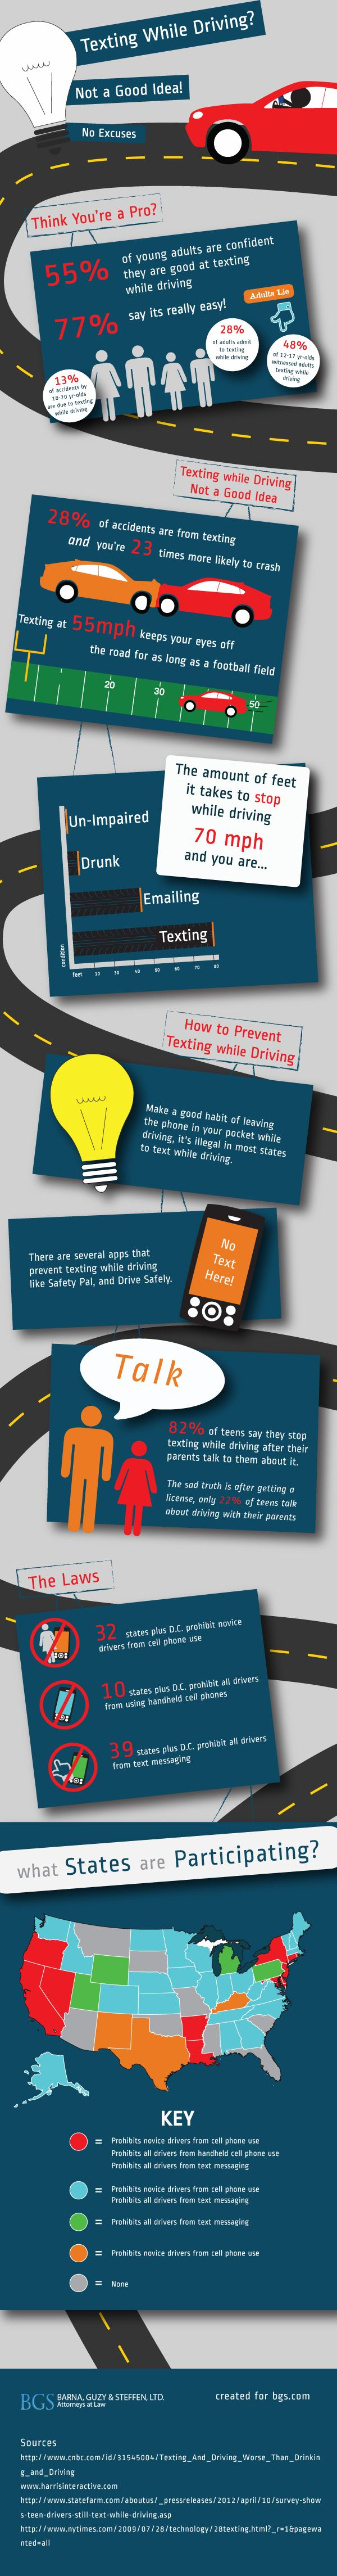 best ideas about texting and driving laws 31 good no texting and driving slogans